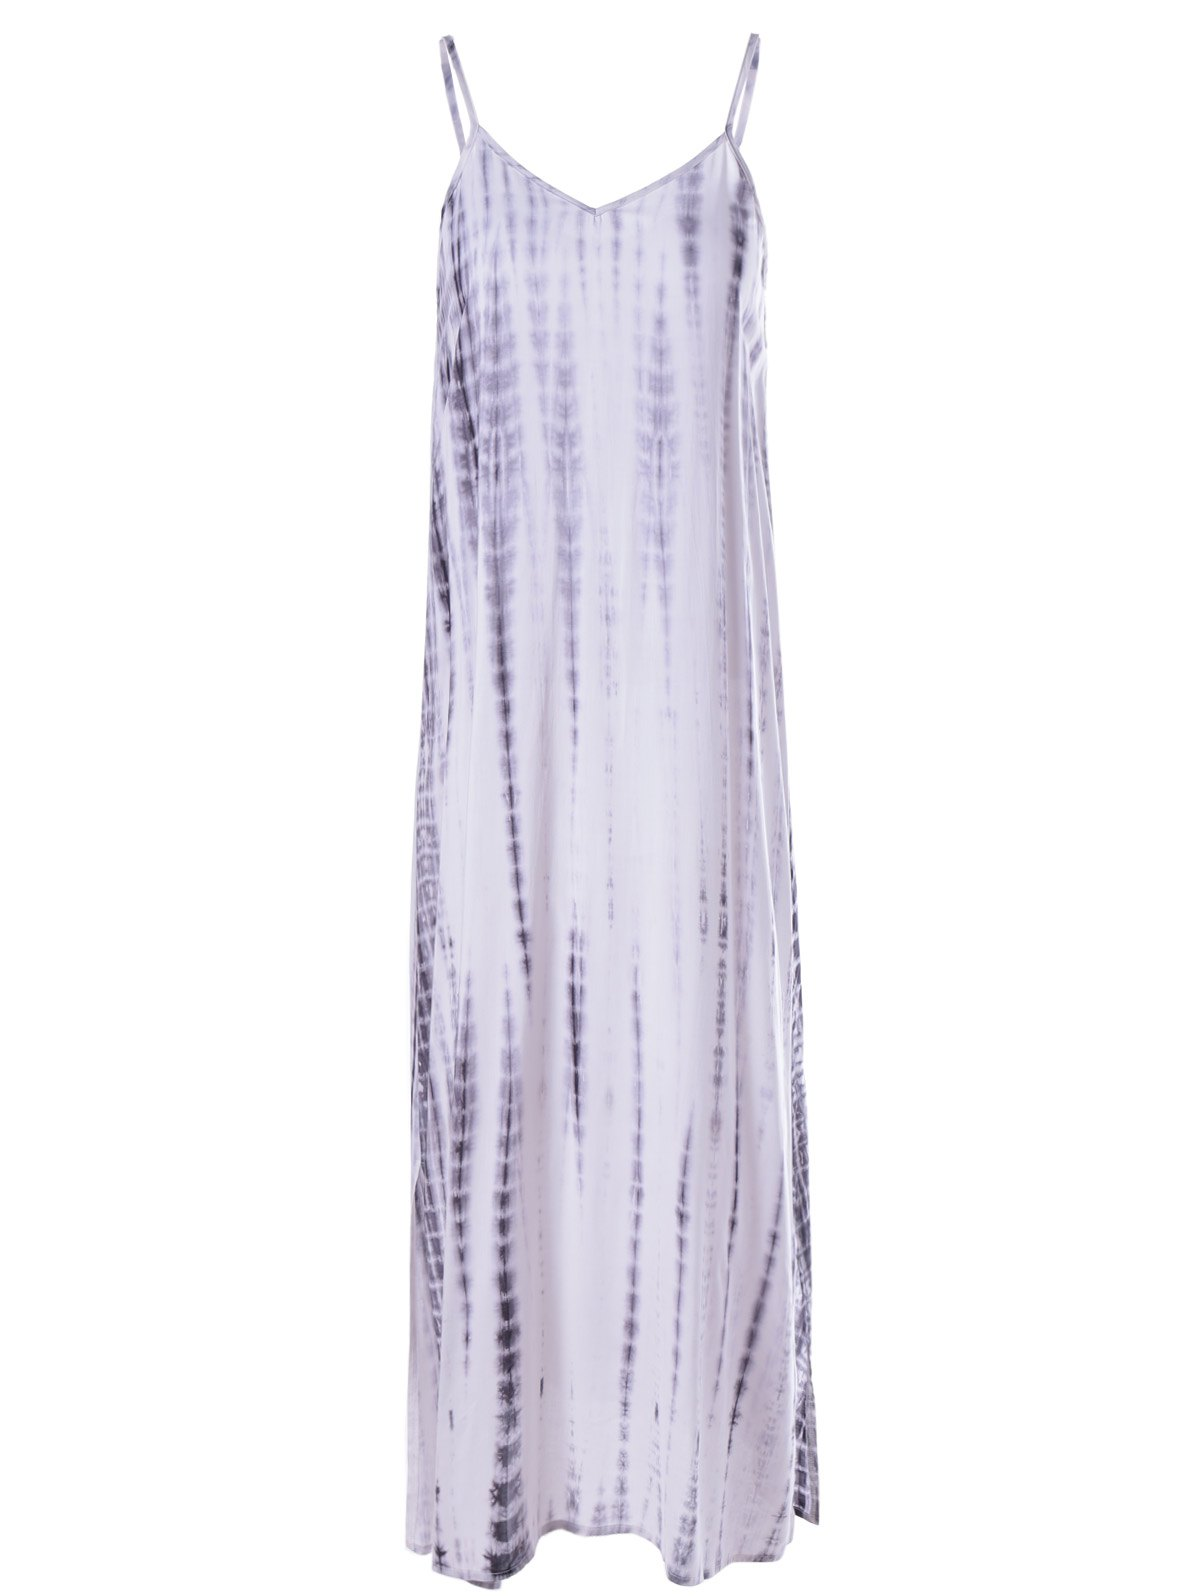 Fashionable Tie-Dye Low-Cut Spaghetti Strap Dress For Woman - WHITE/BLACK XL